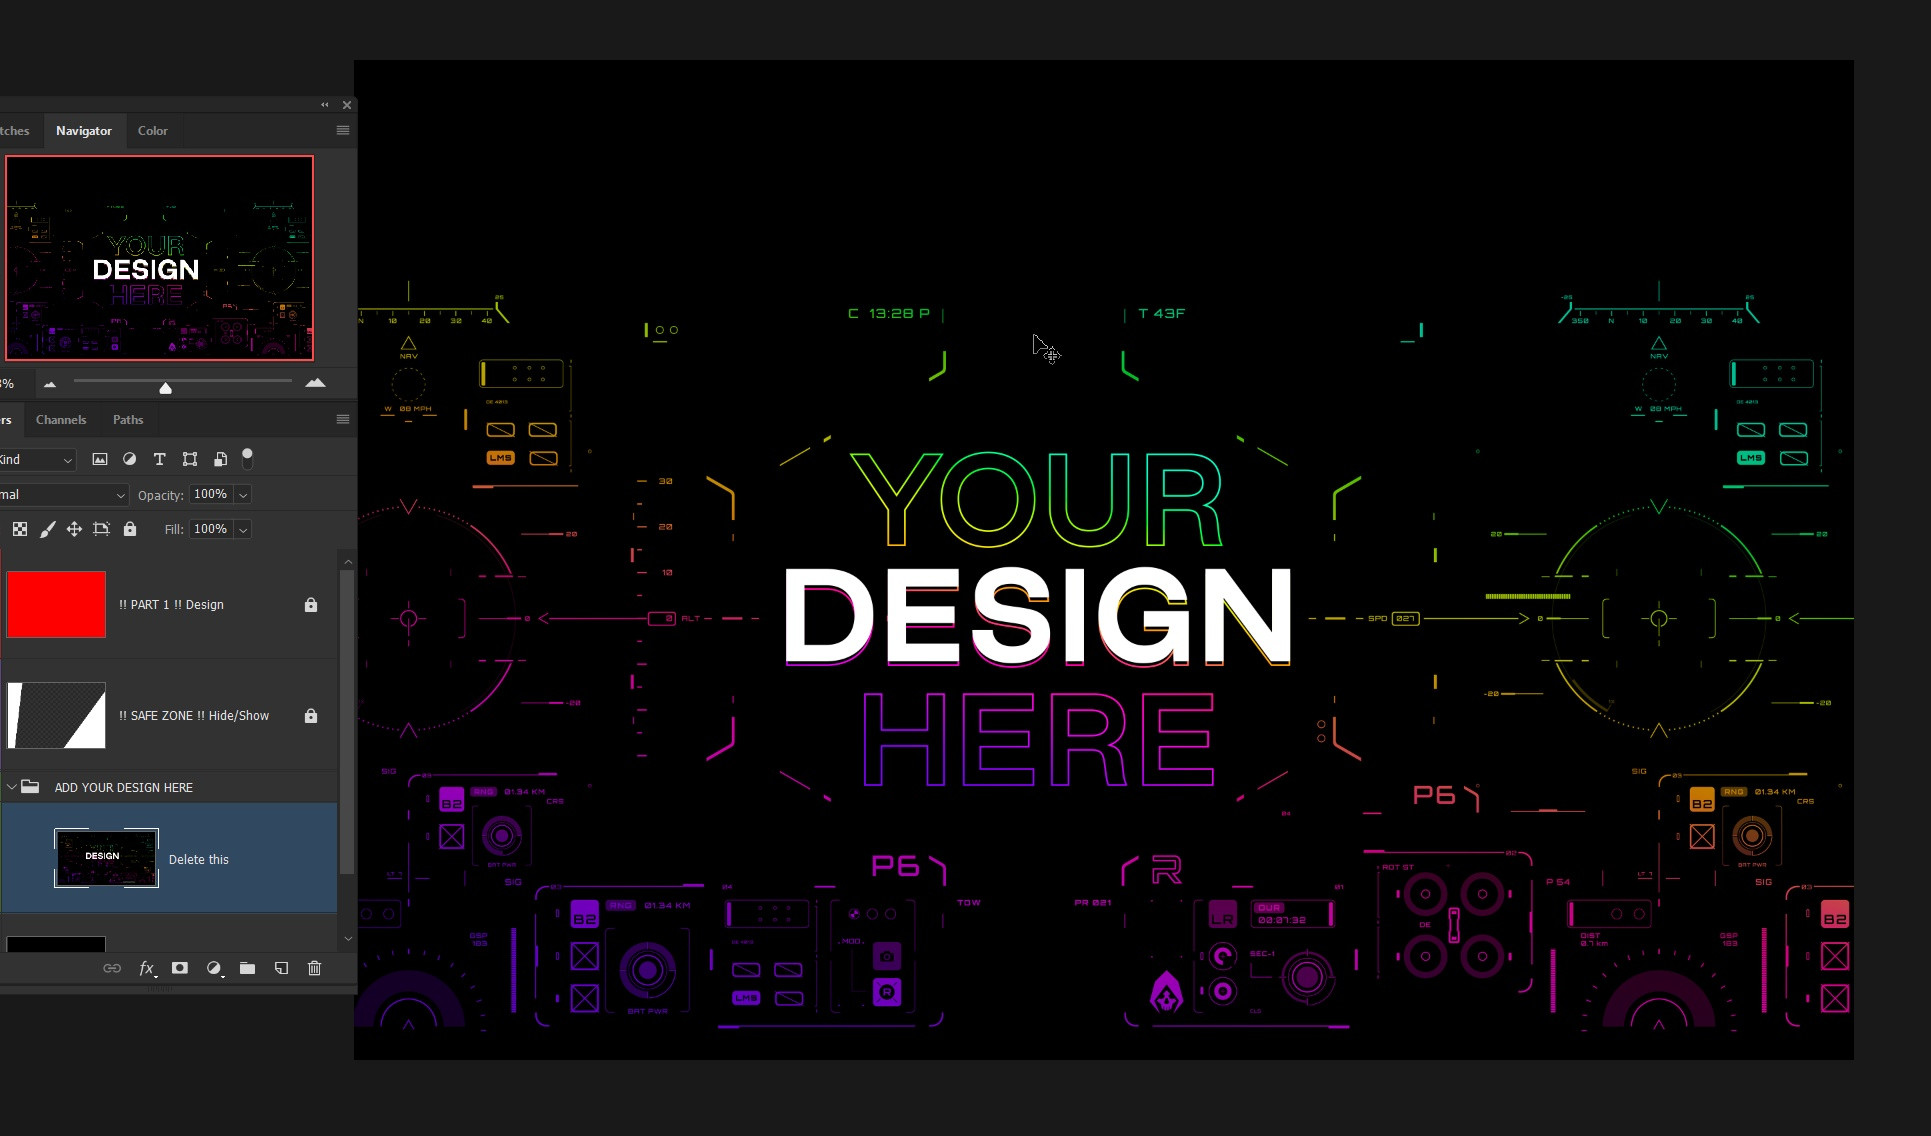 Your DESIGN here.